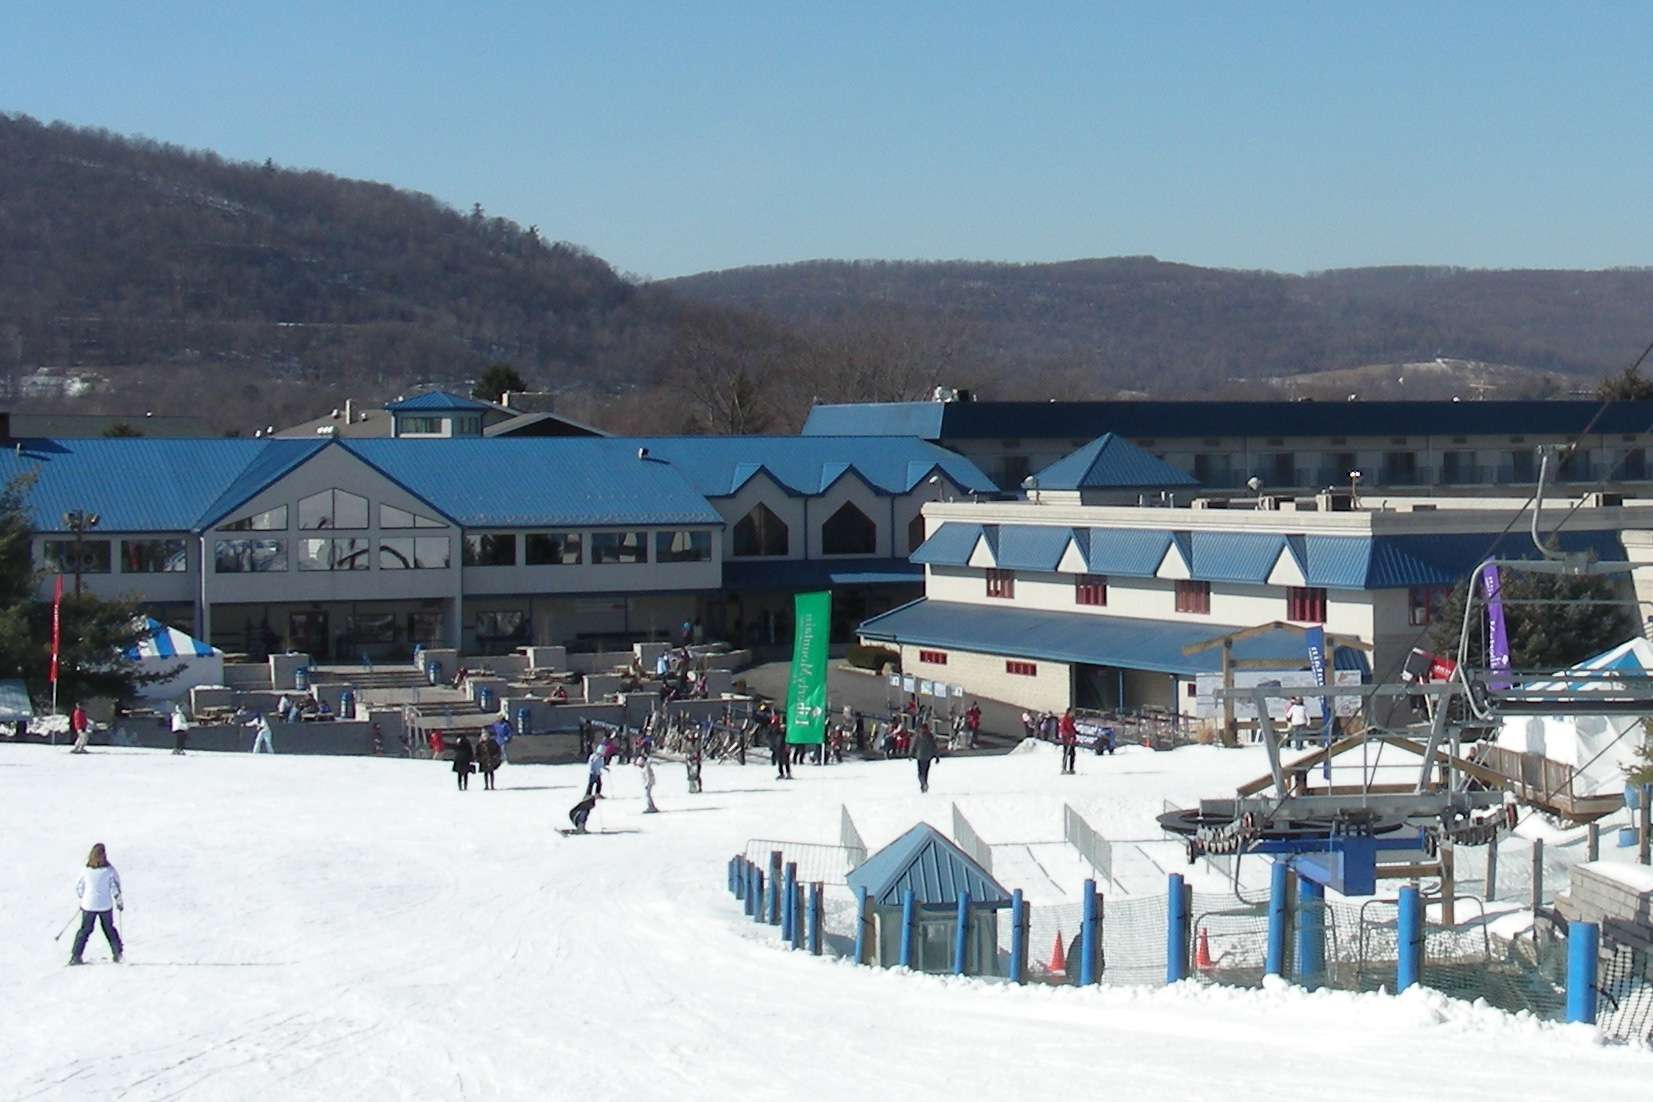 11 ski resorts near washington, d.c.